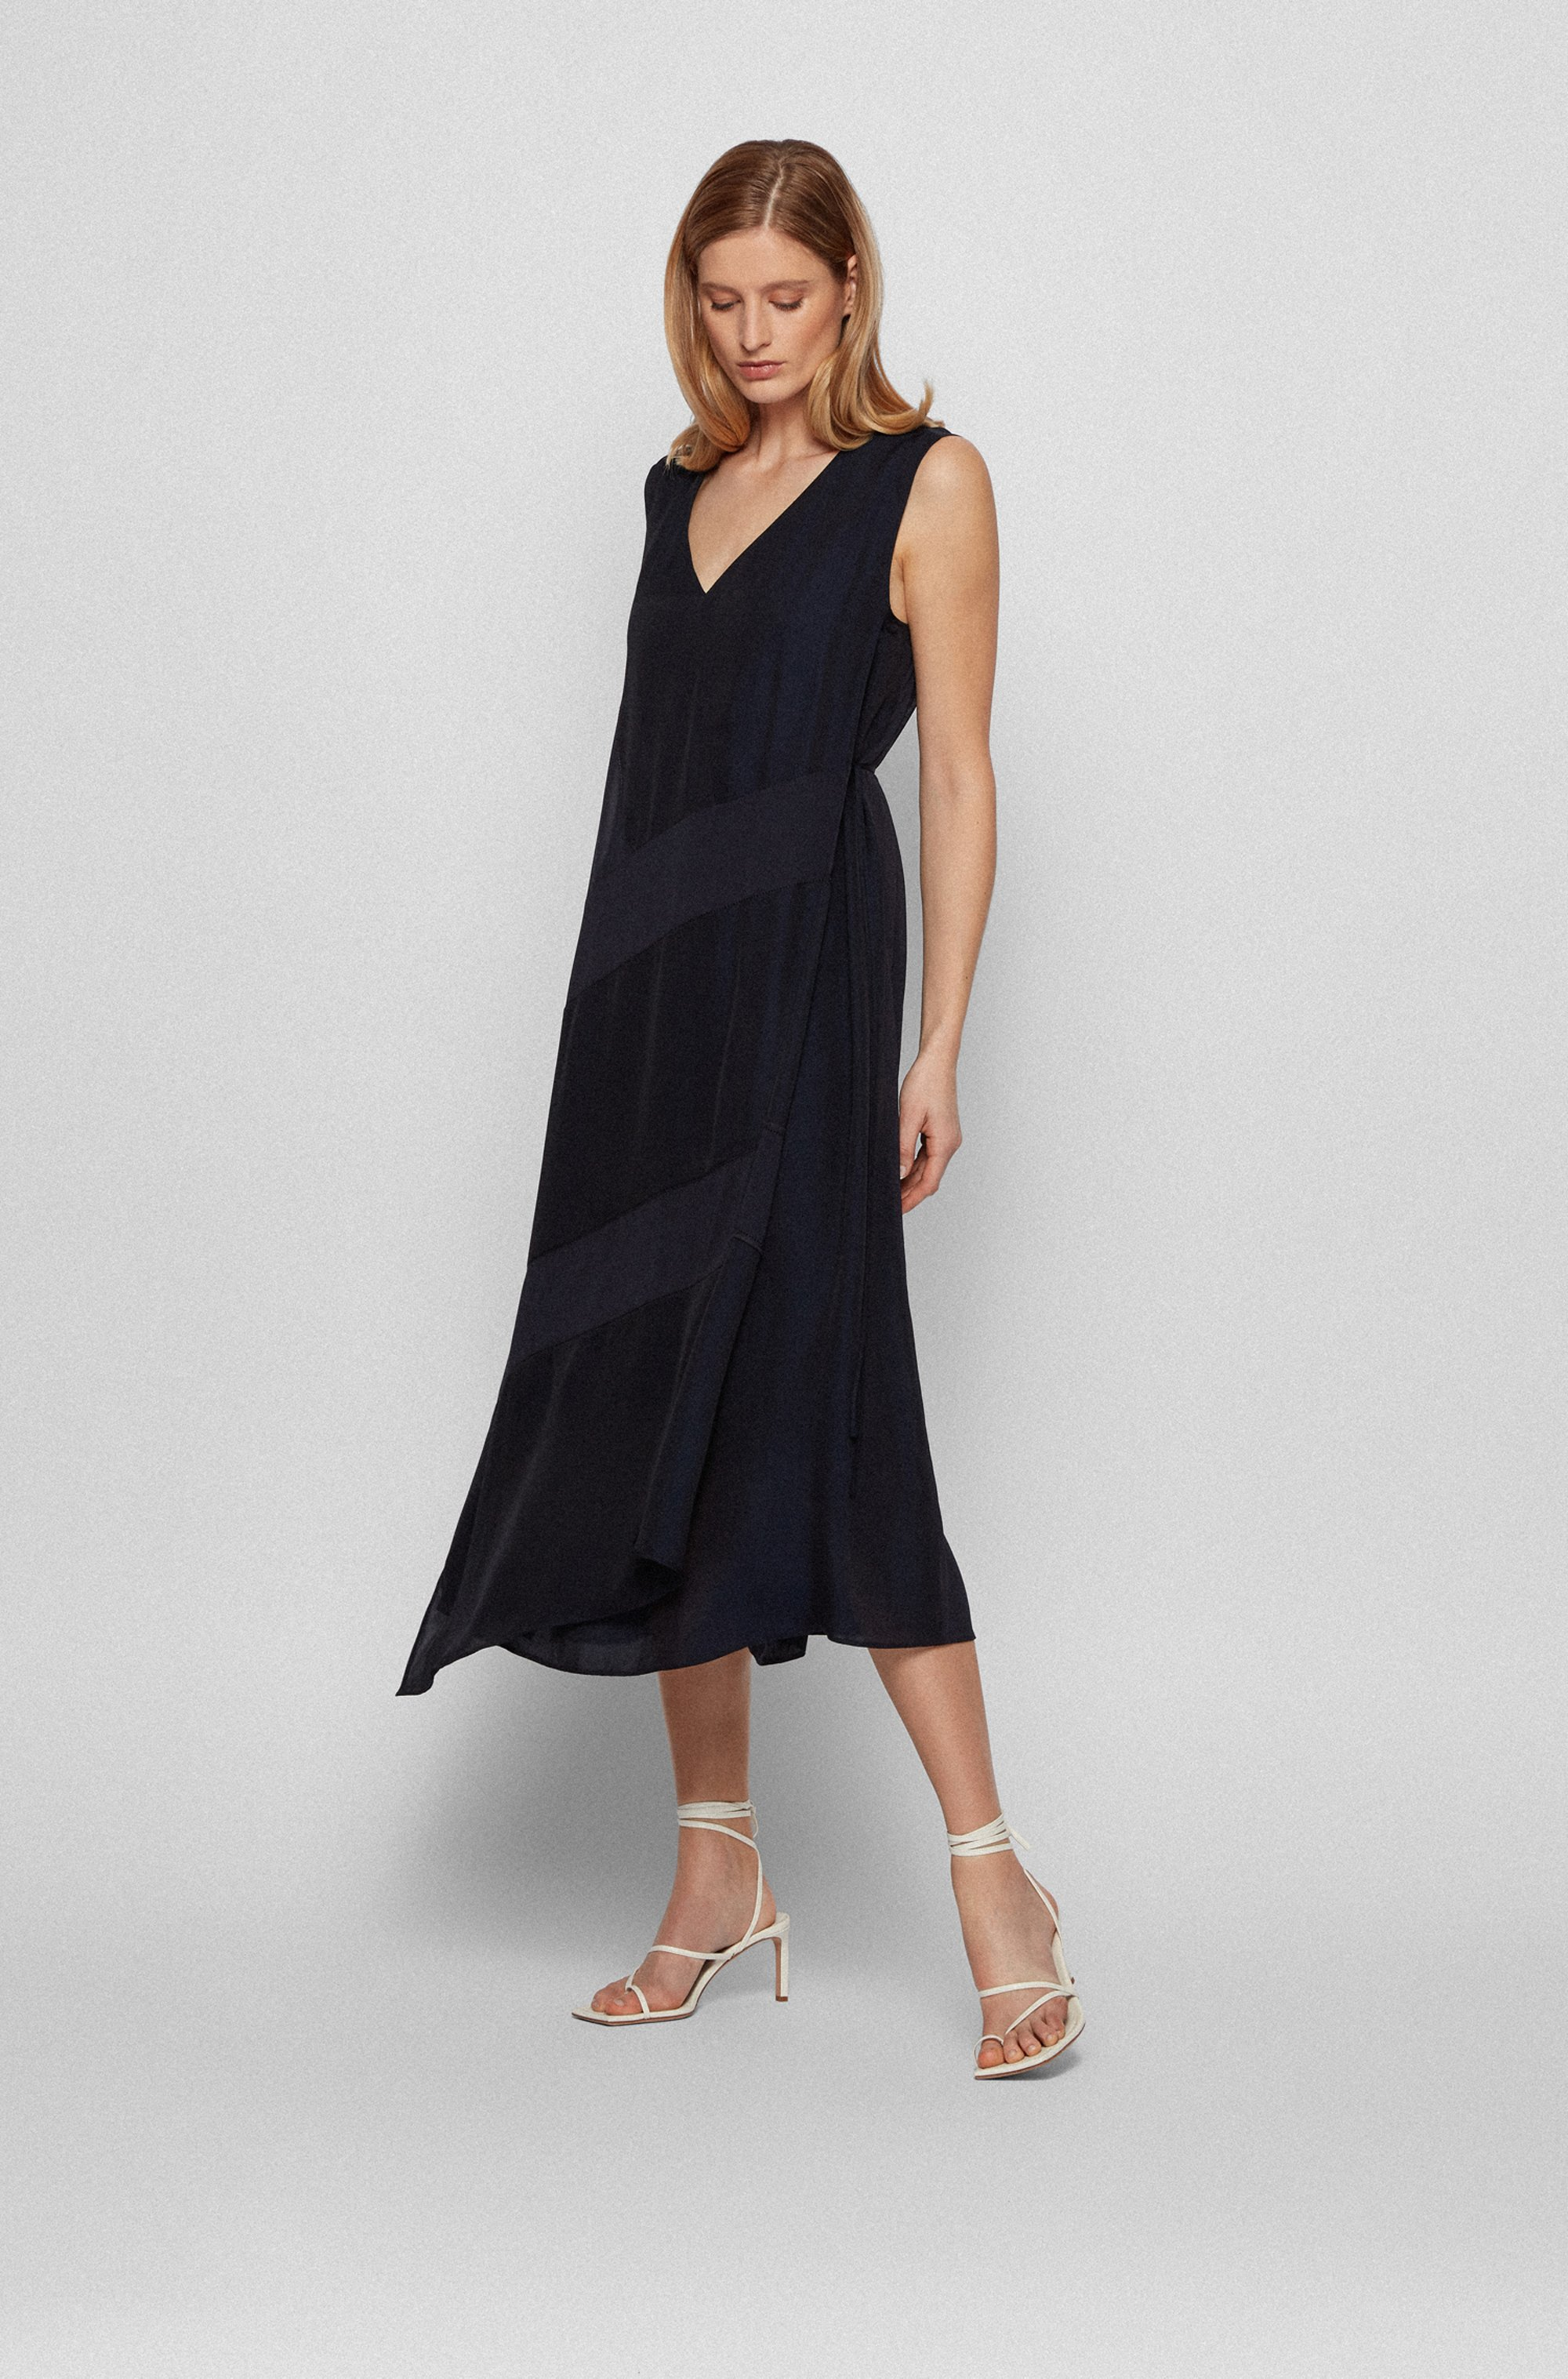 Silk-trimmed sleeveless dress in chiffon with keyhole closure